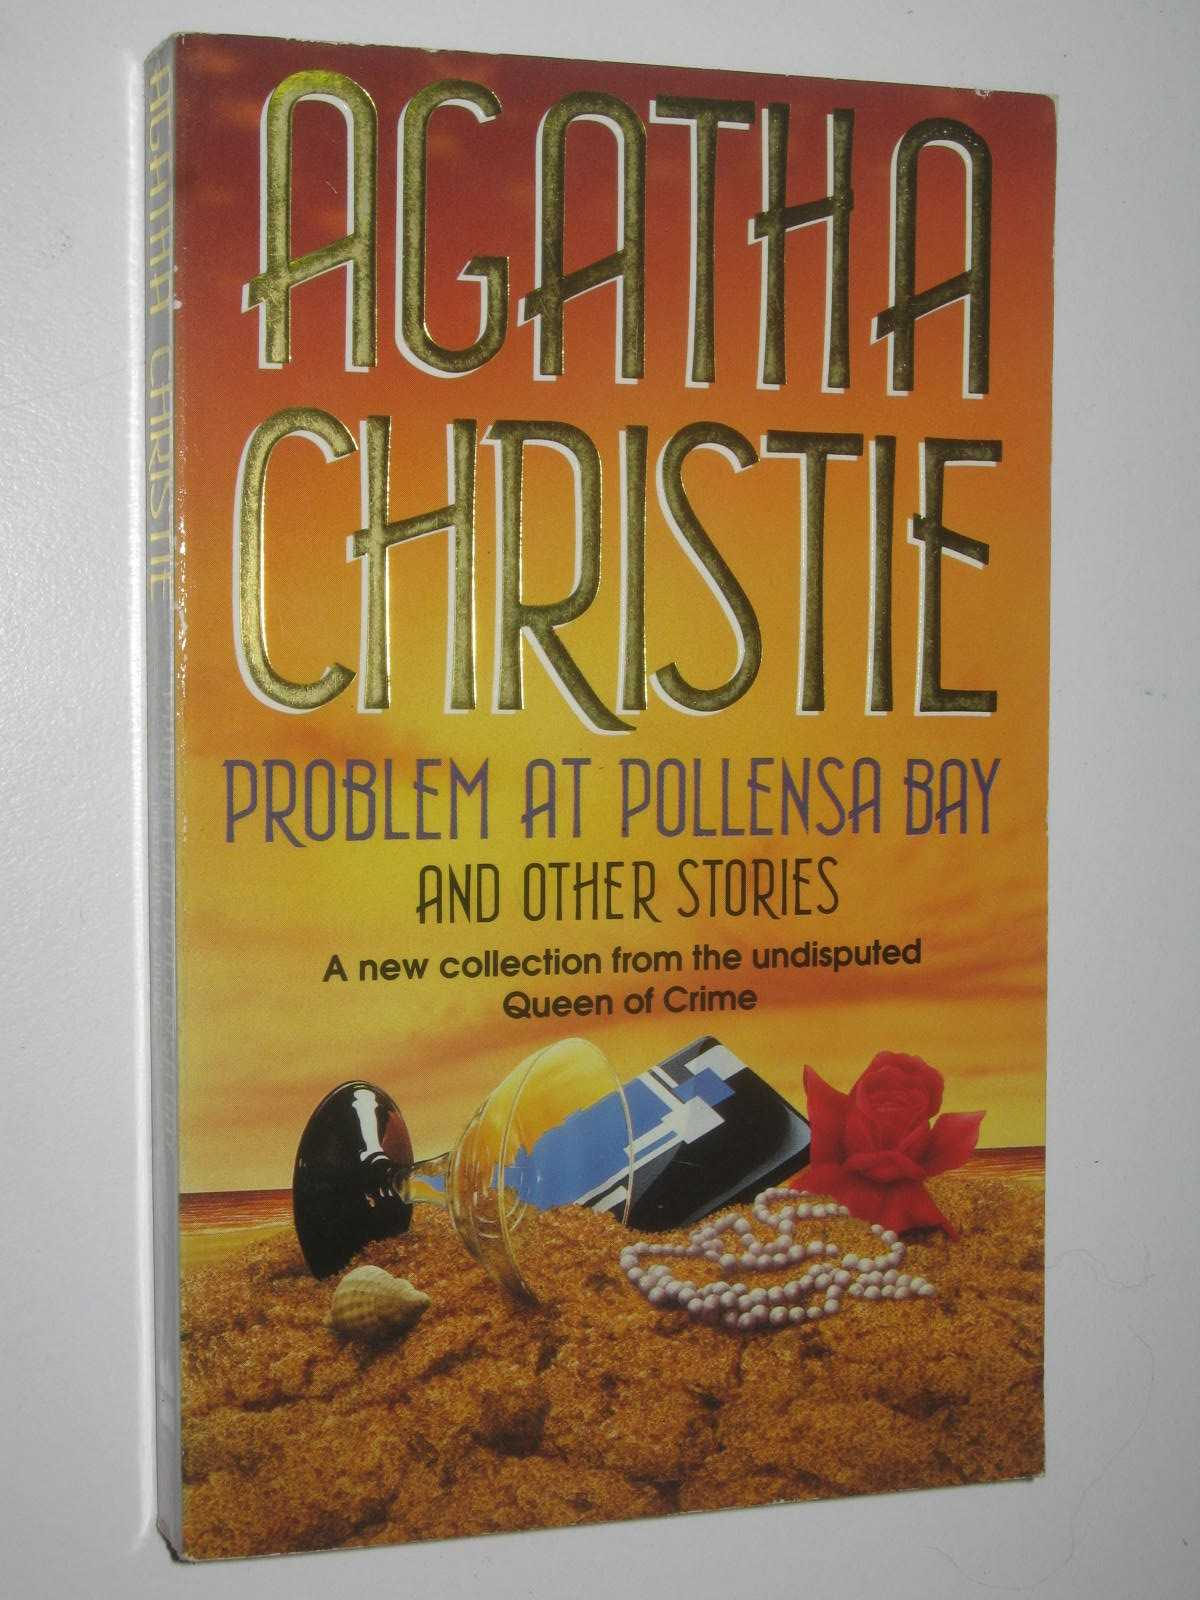 Image for Problem at Pollensa Bay and Other Stories